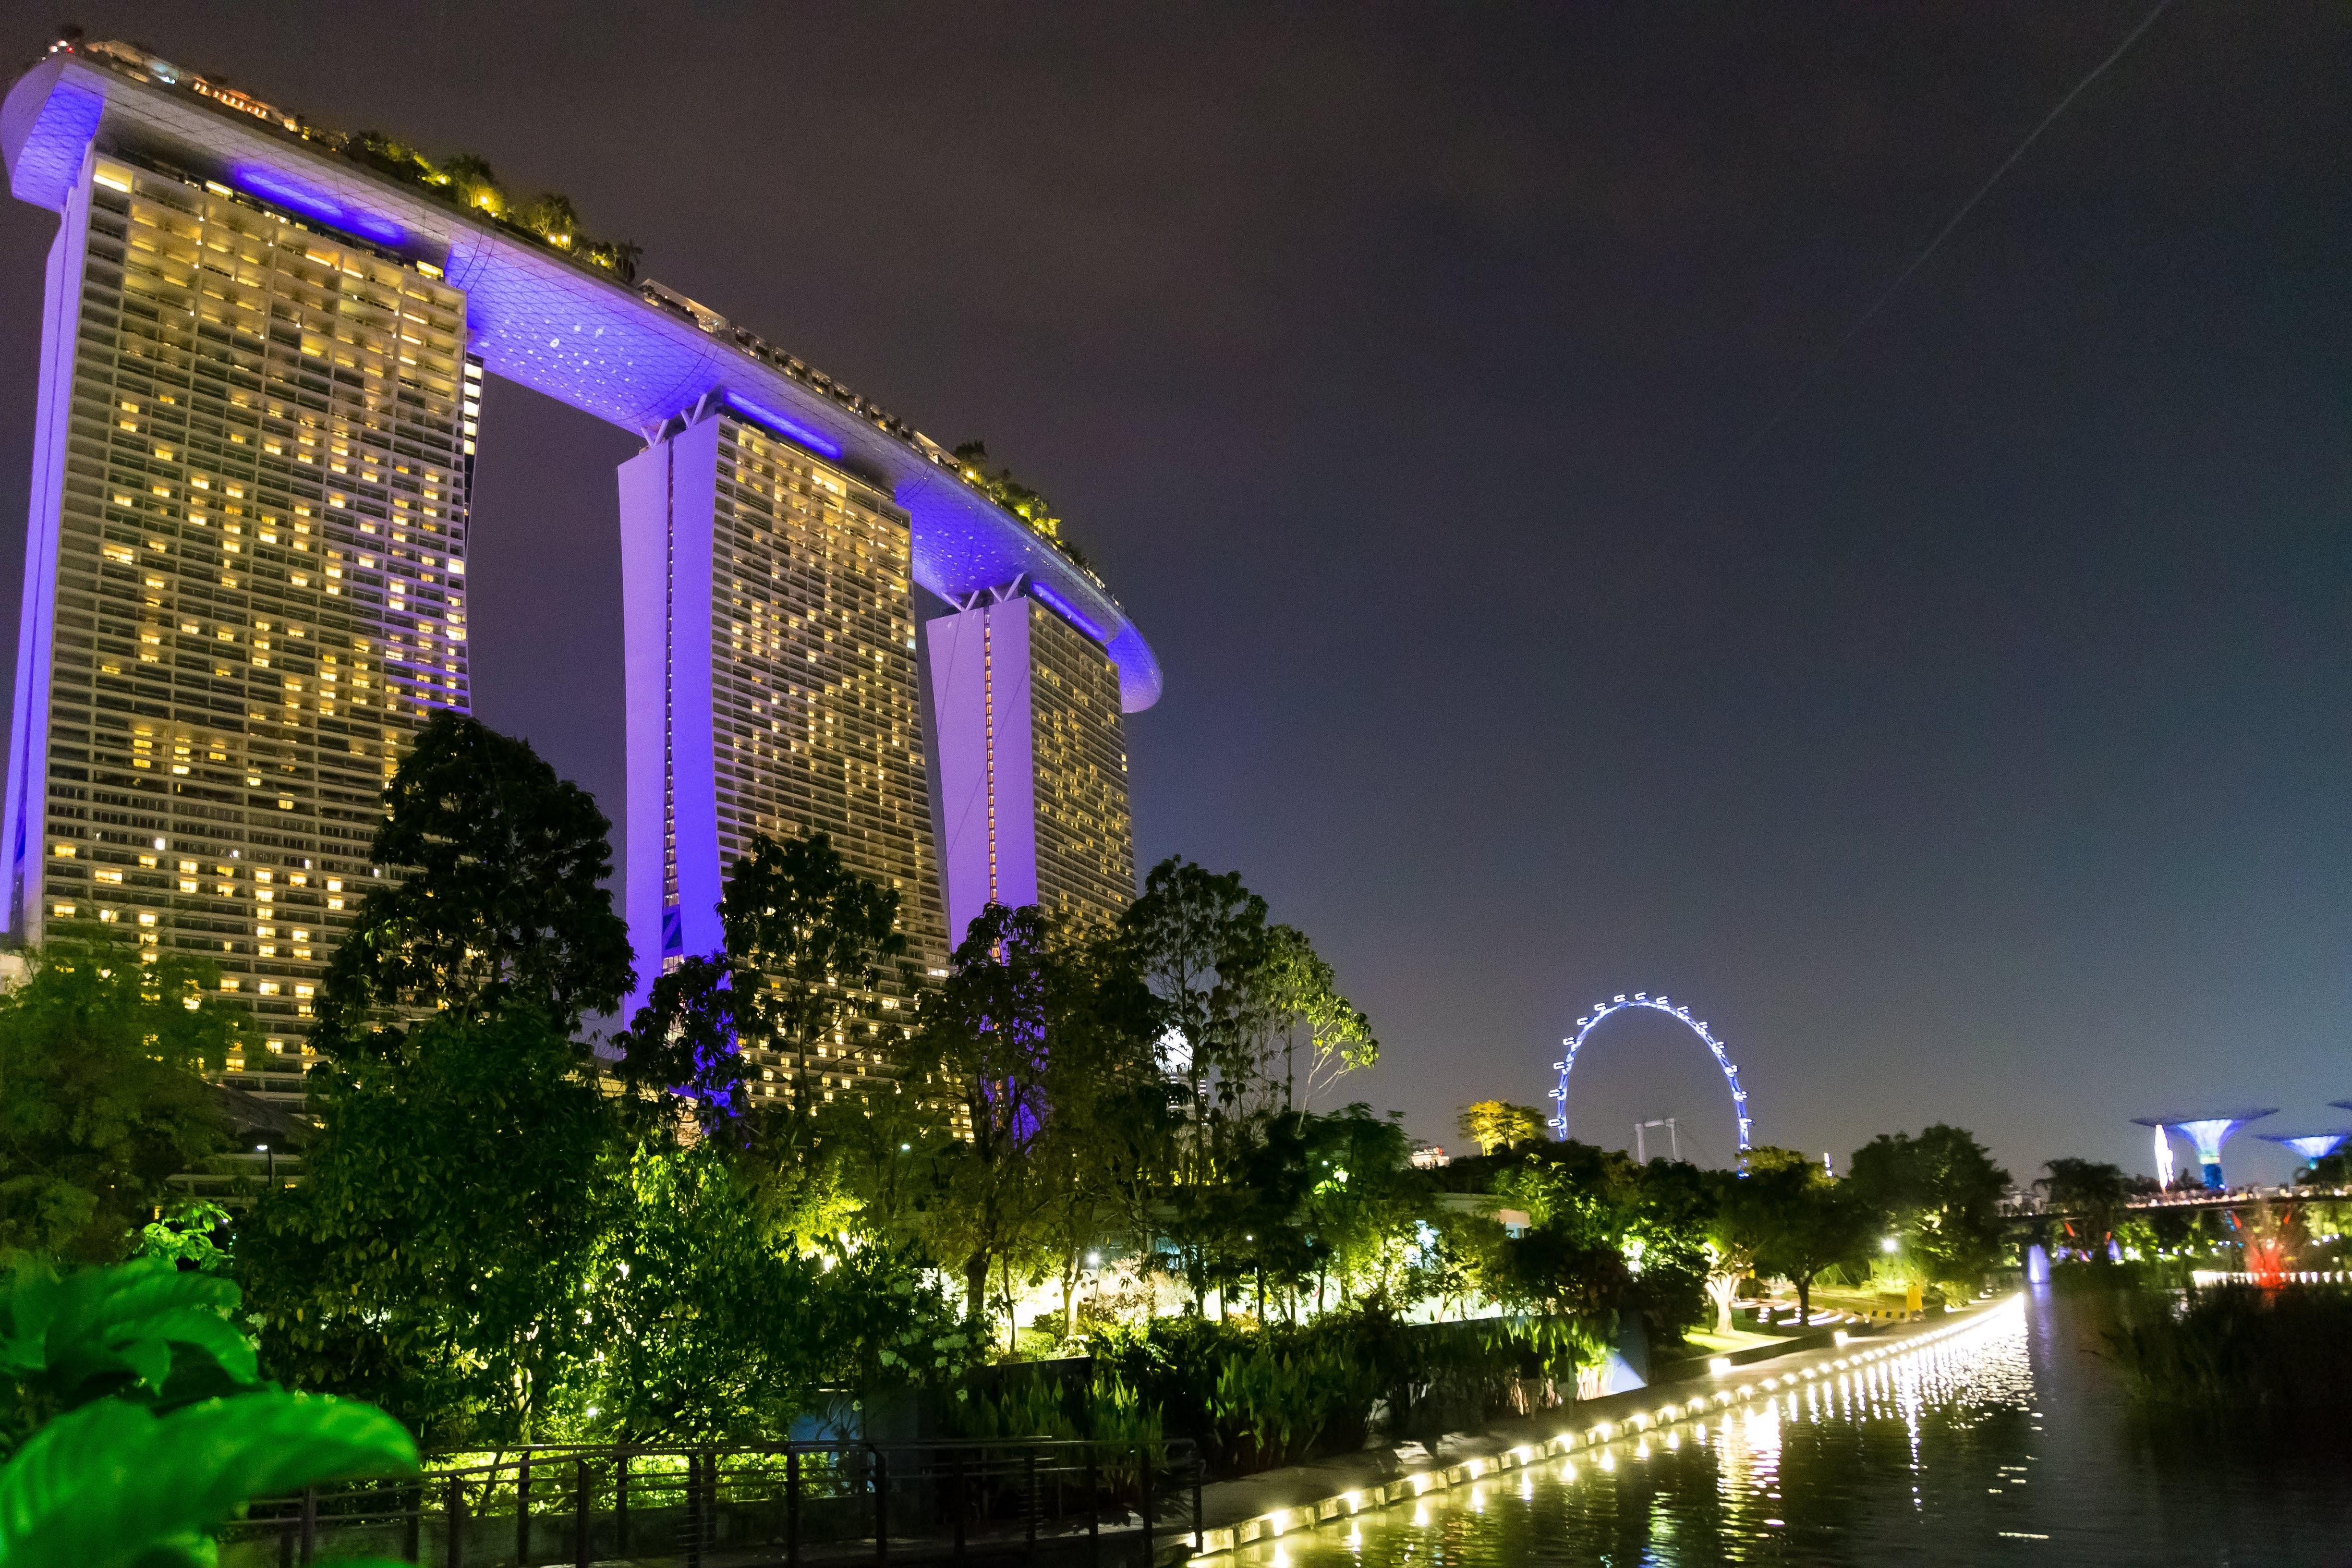 Marina Bay Sands Hotel And The Singapore Flyer Sands Hotel Marina Bay Hotel Singapore Marina Bay Sands